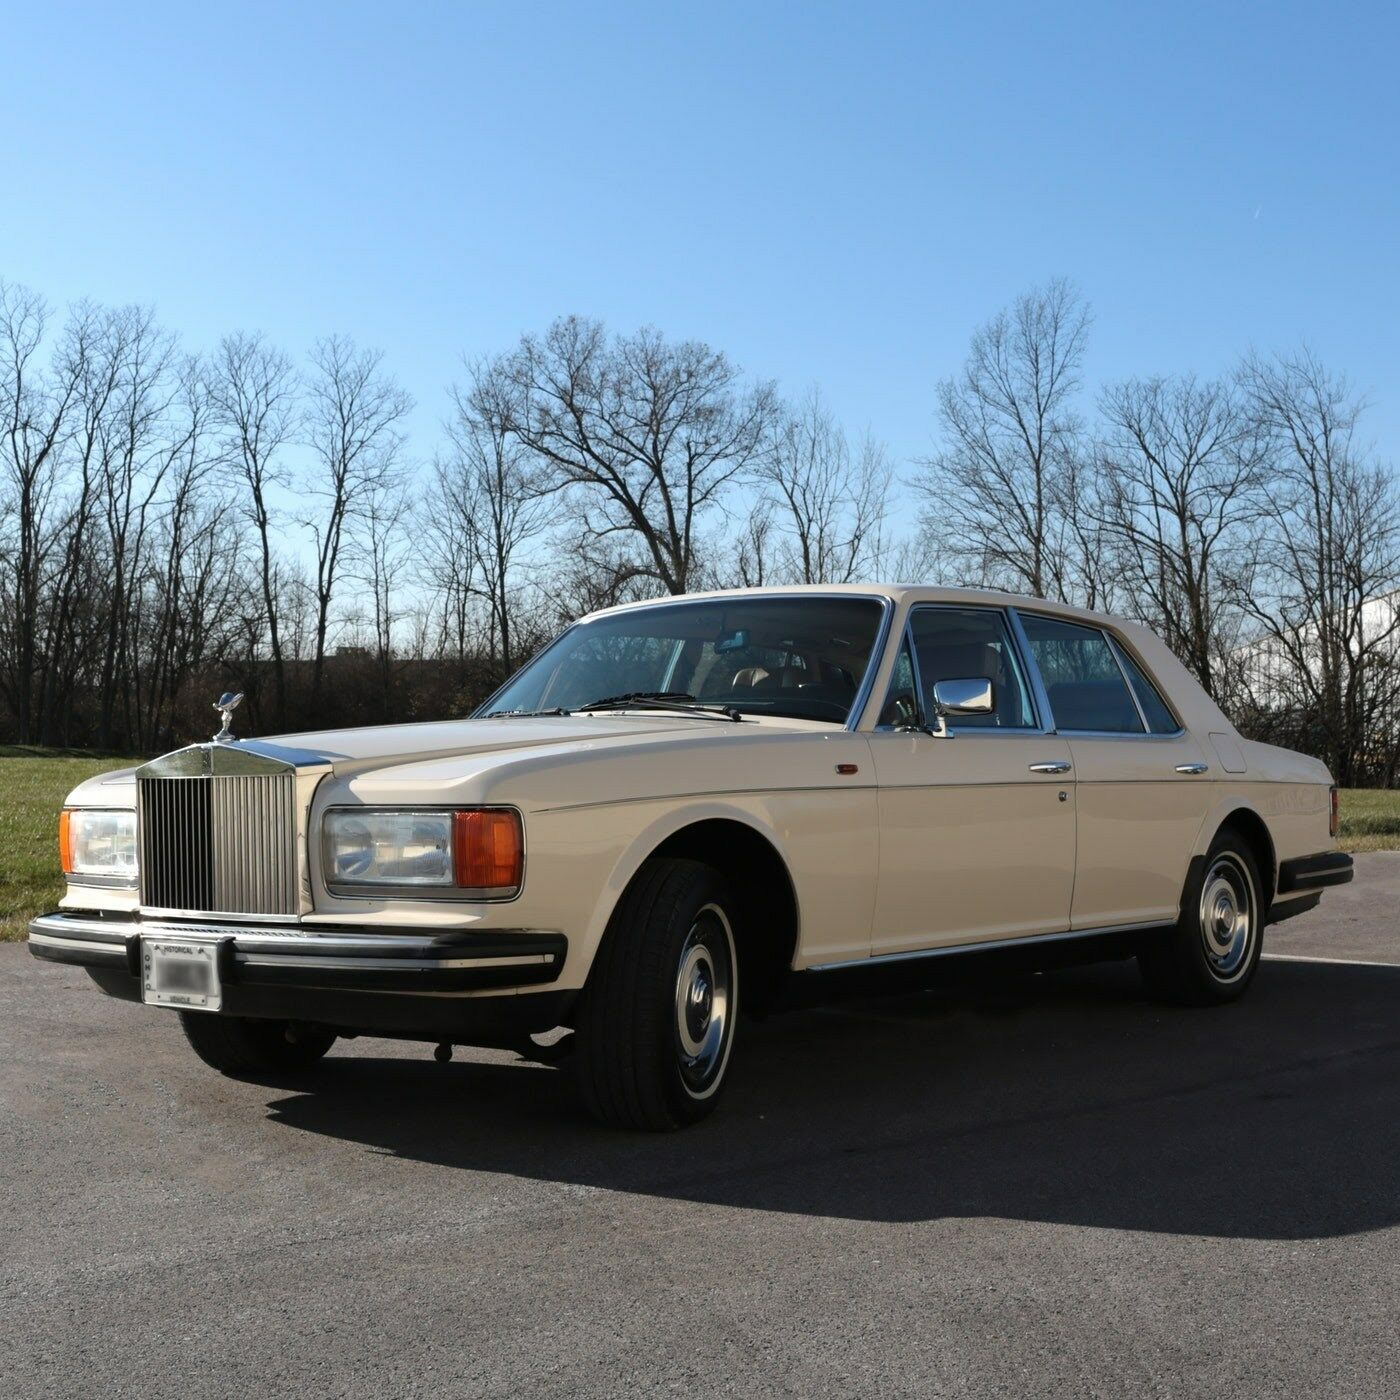 1983 Rolls-Royce Silver Spirit/Spur/Dawn  Rolls Royce Spirit 1983 - V-8 412 engine, cream exterior, leather seats